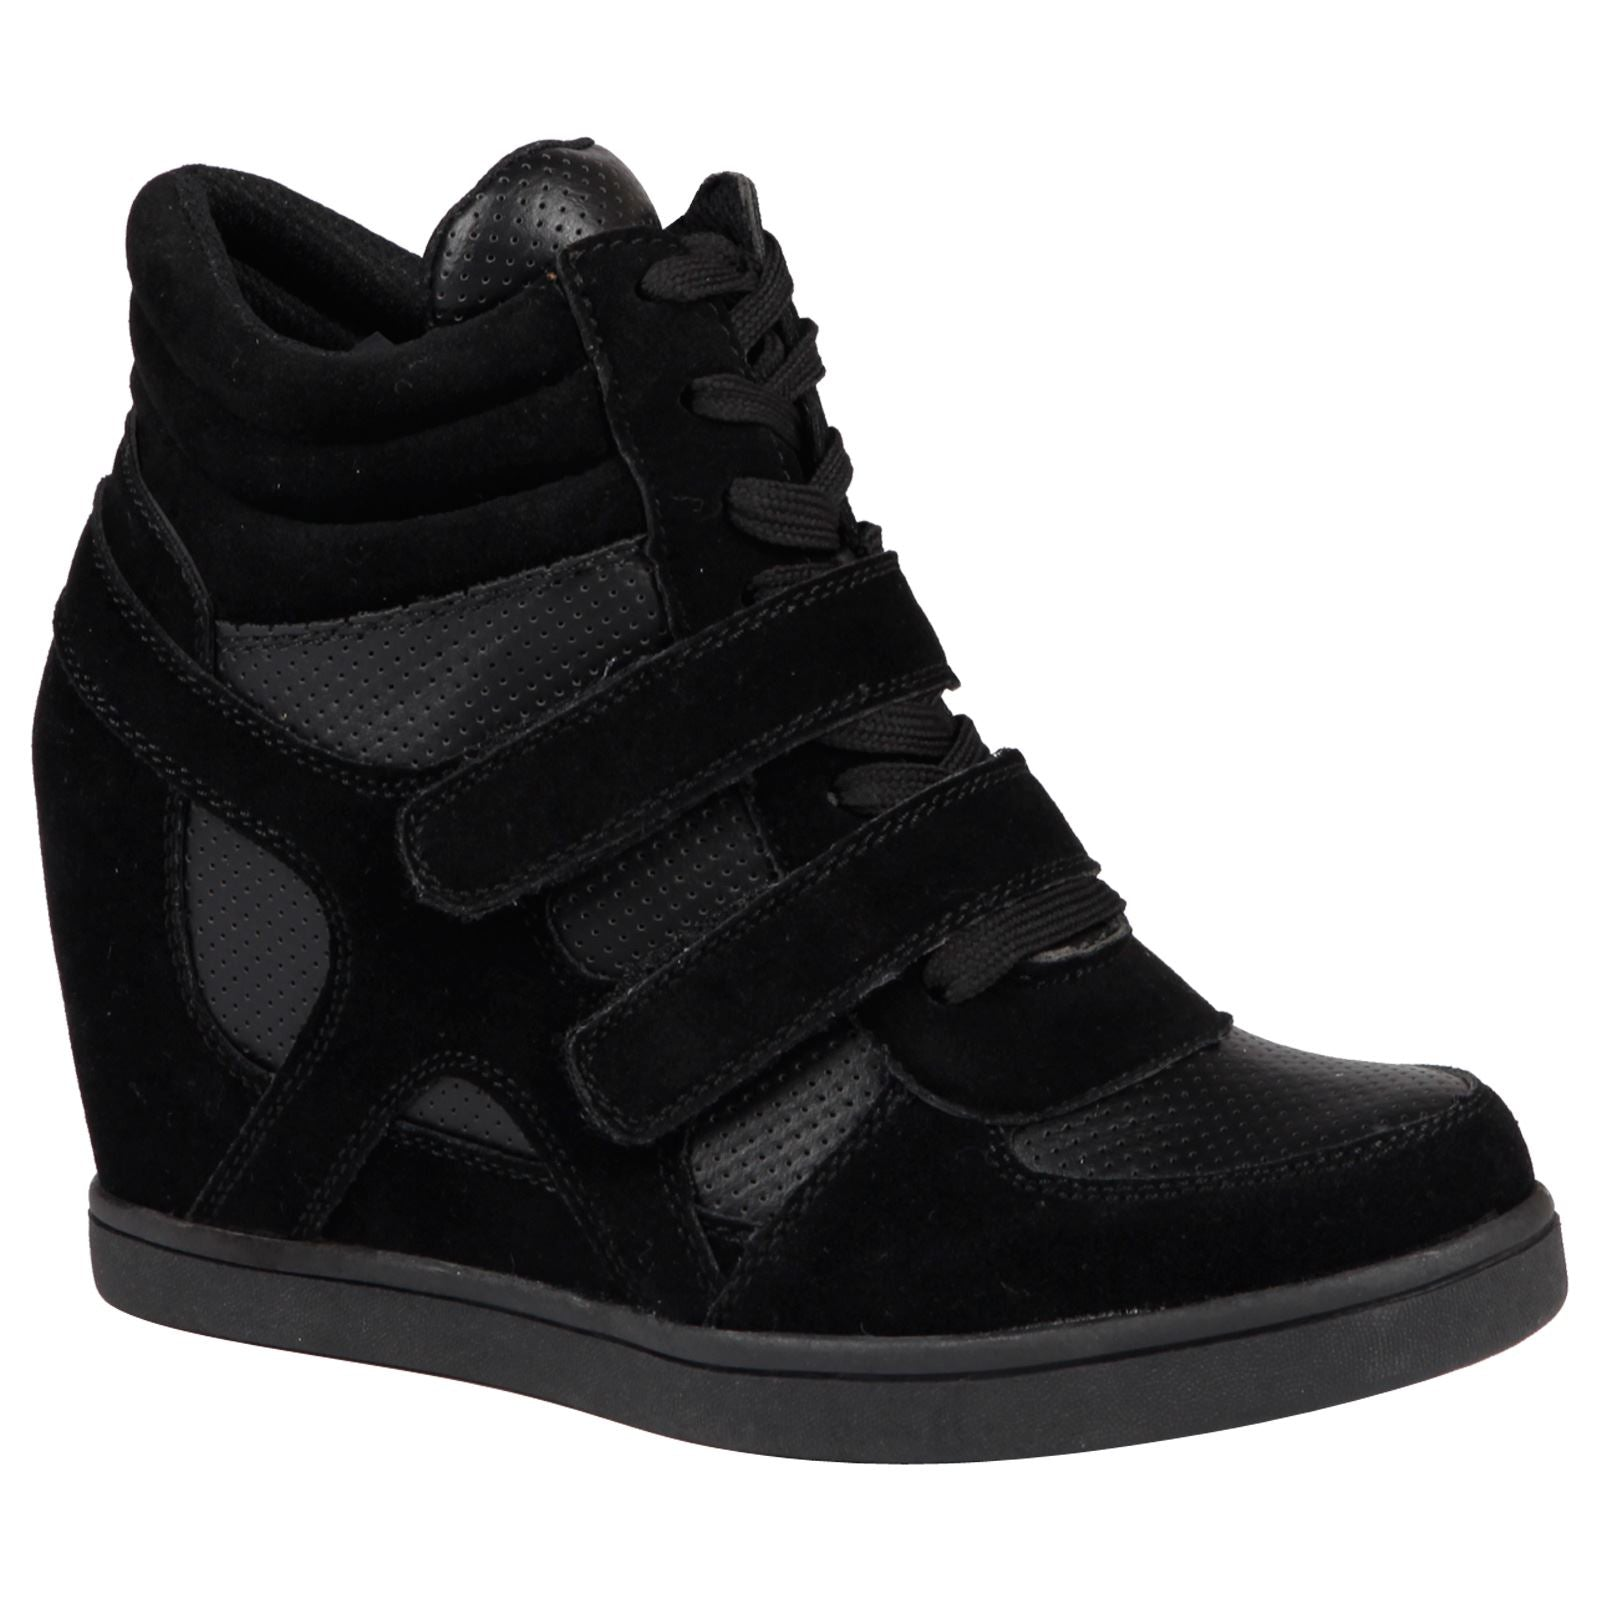 Thea Hidden Wedge Lace Up Trainers in Black